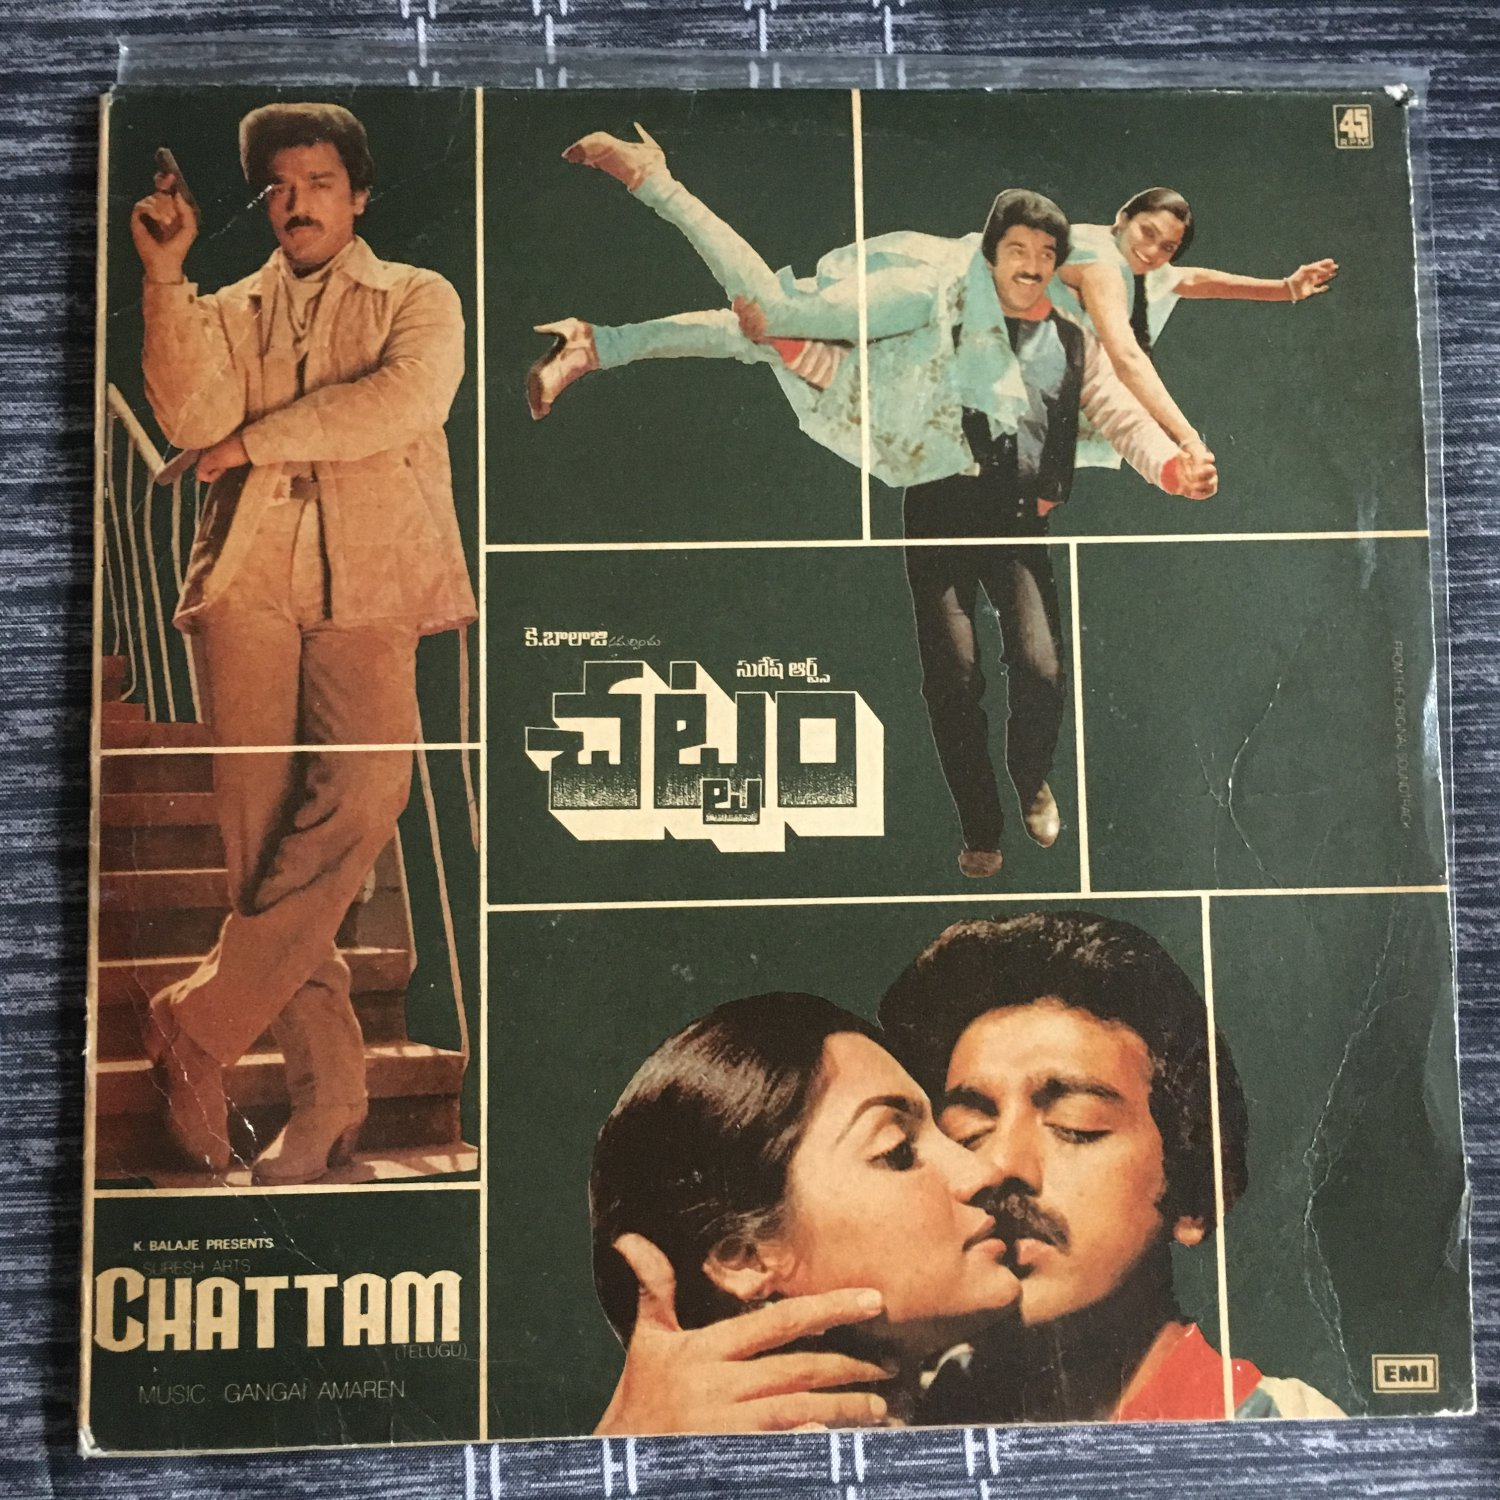 GANGAI AMAREN LP chattam BOLLYWOOD BREAKS DISCO FUNKY ELECTRO mp3 LISTEN